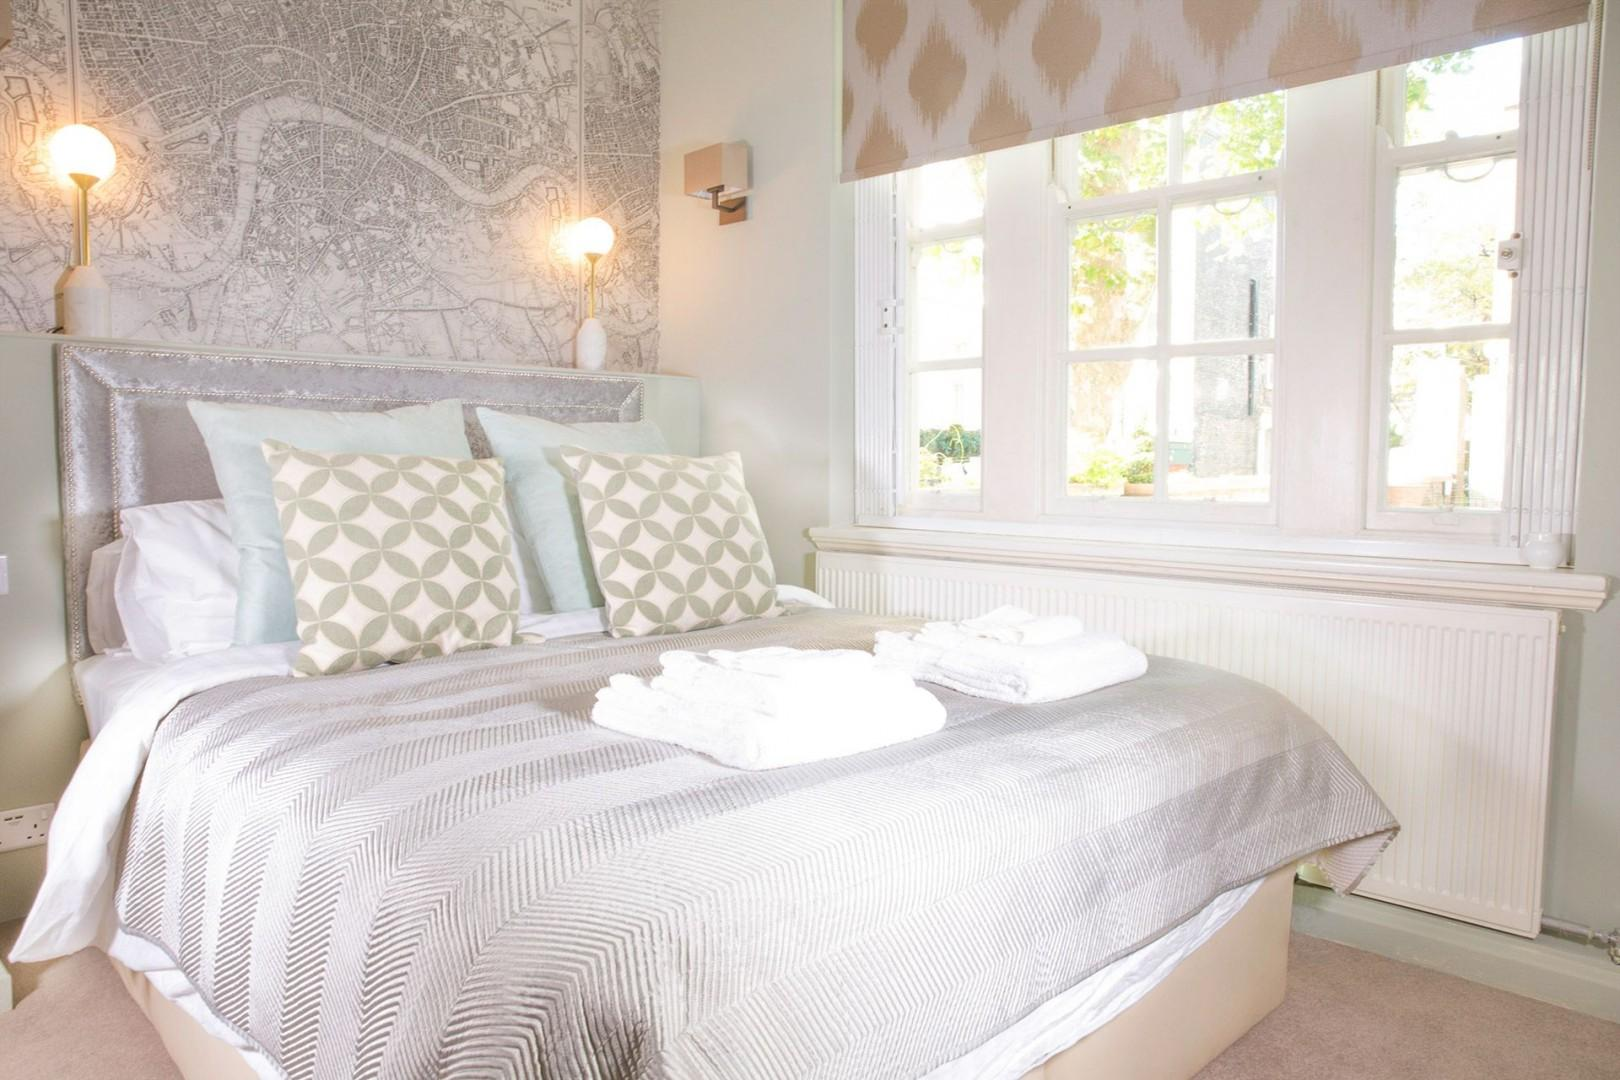 The first bedroom with comfortable bed that can be unzipped to form two beds